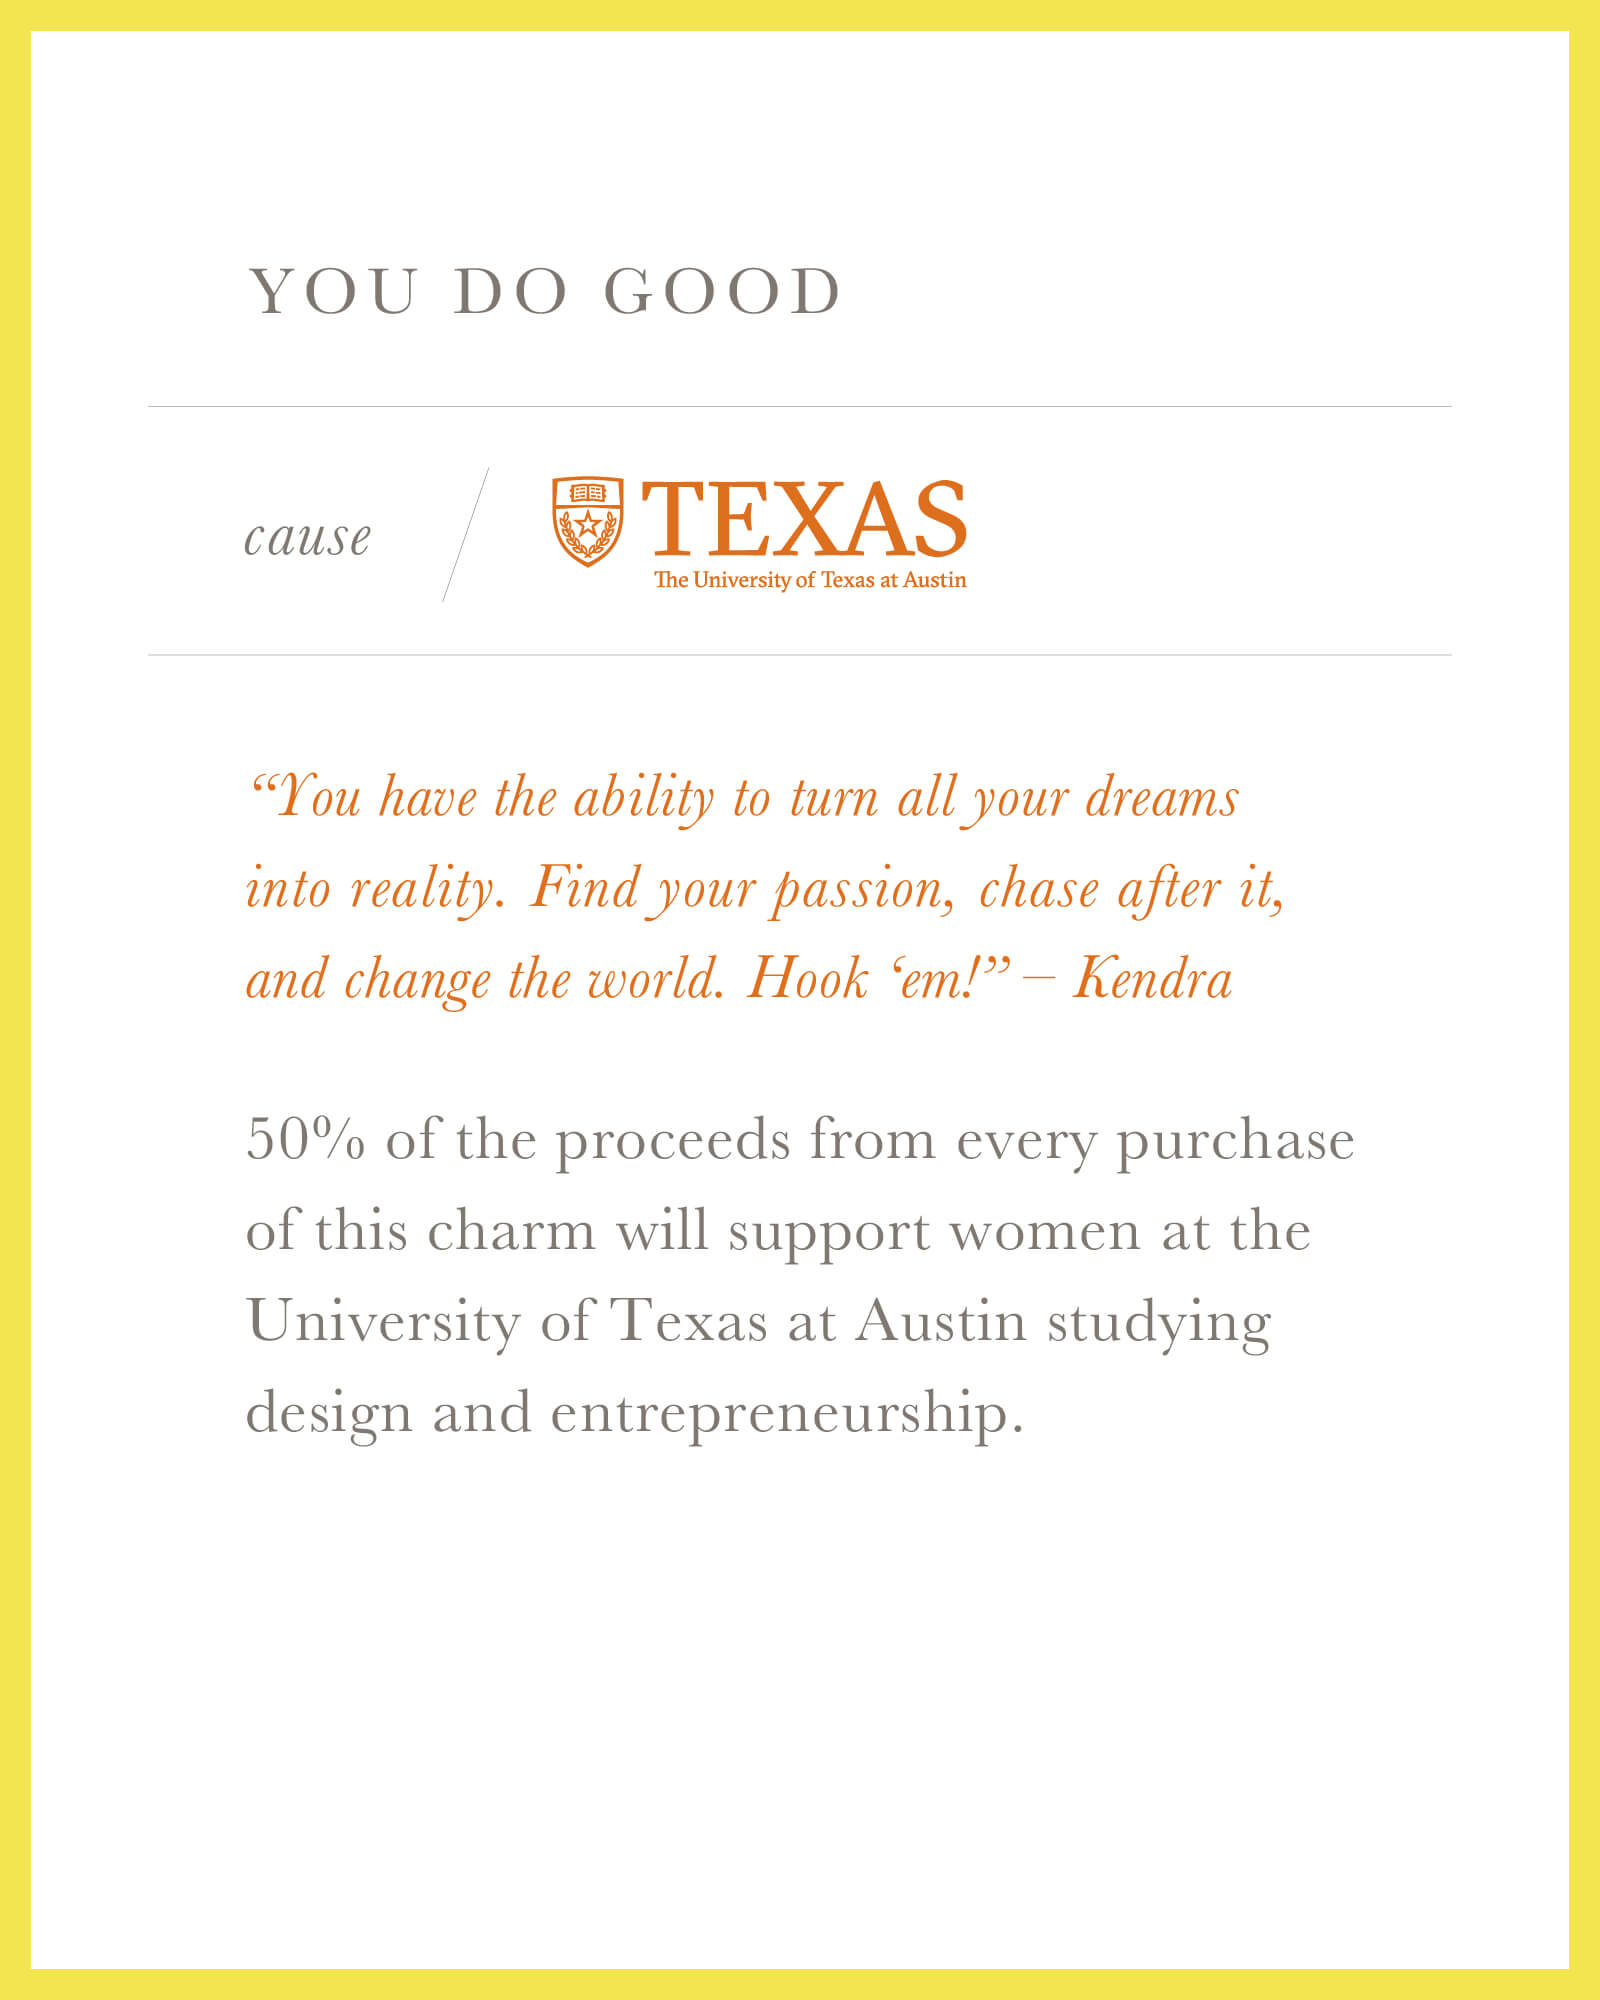 The University of Texas at Austin Longhorn Charm in Gold